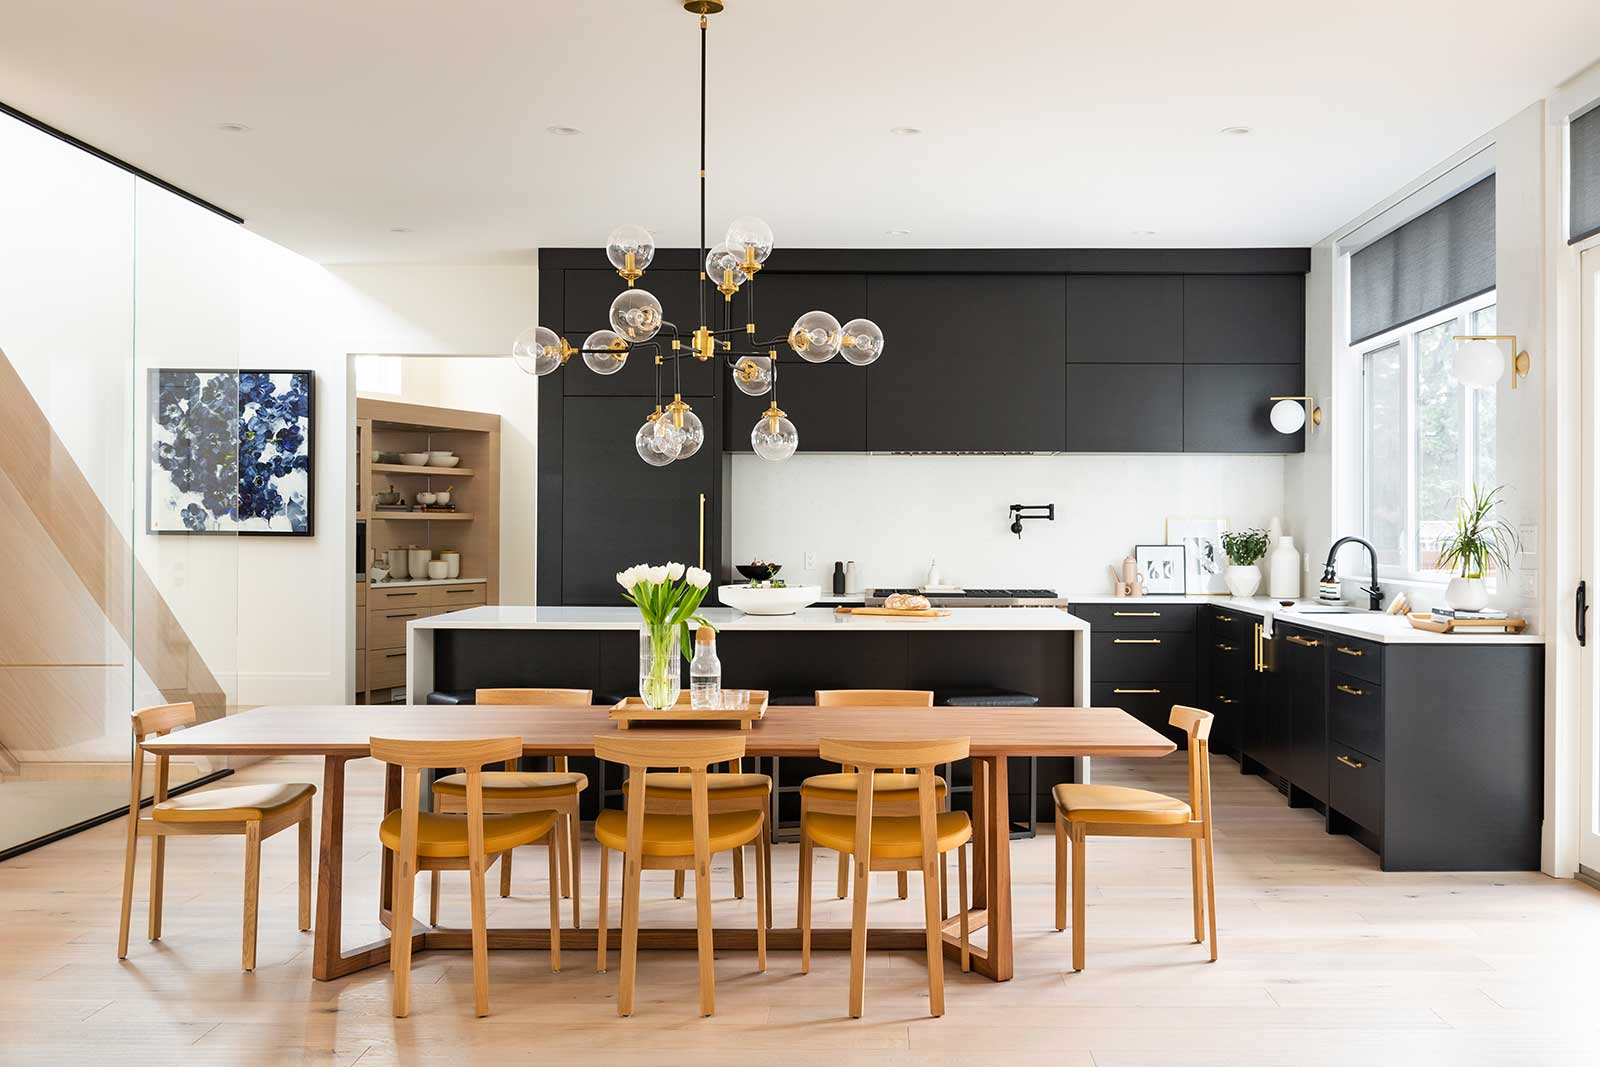 Imperial Drive Residence | Residential Interior Design Calgary